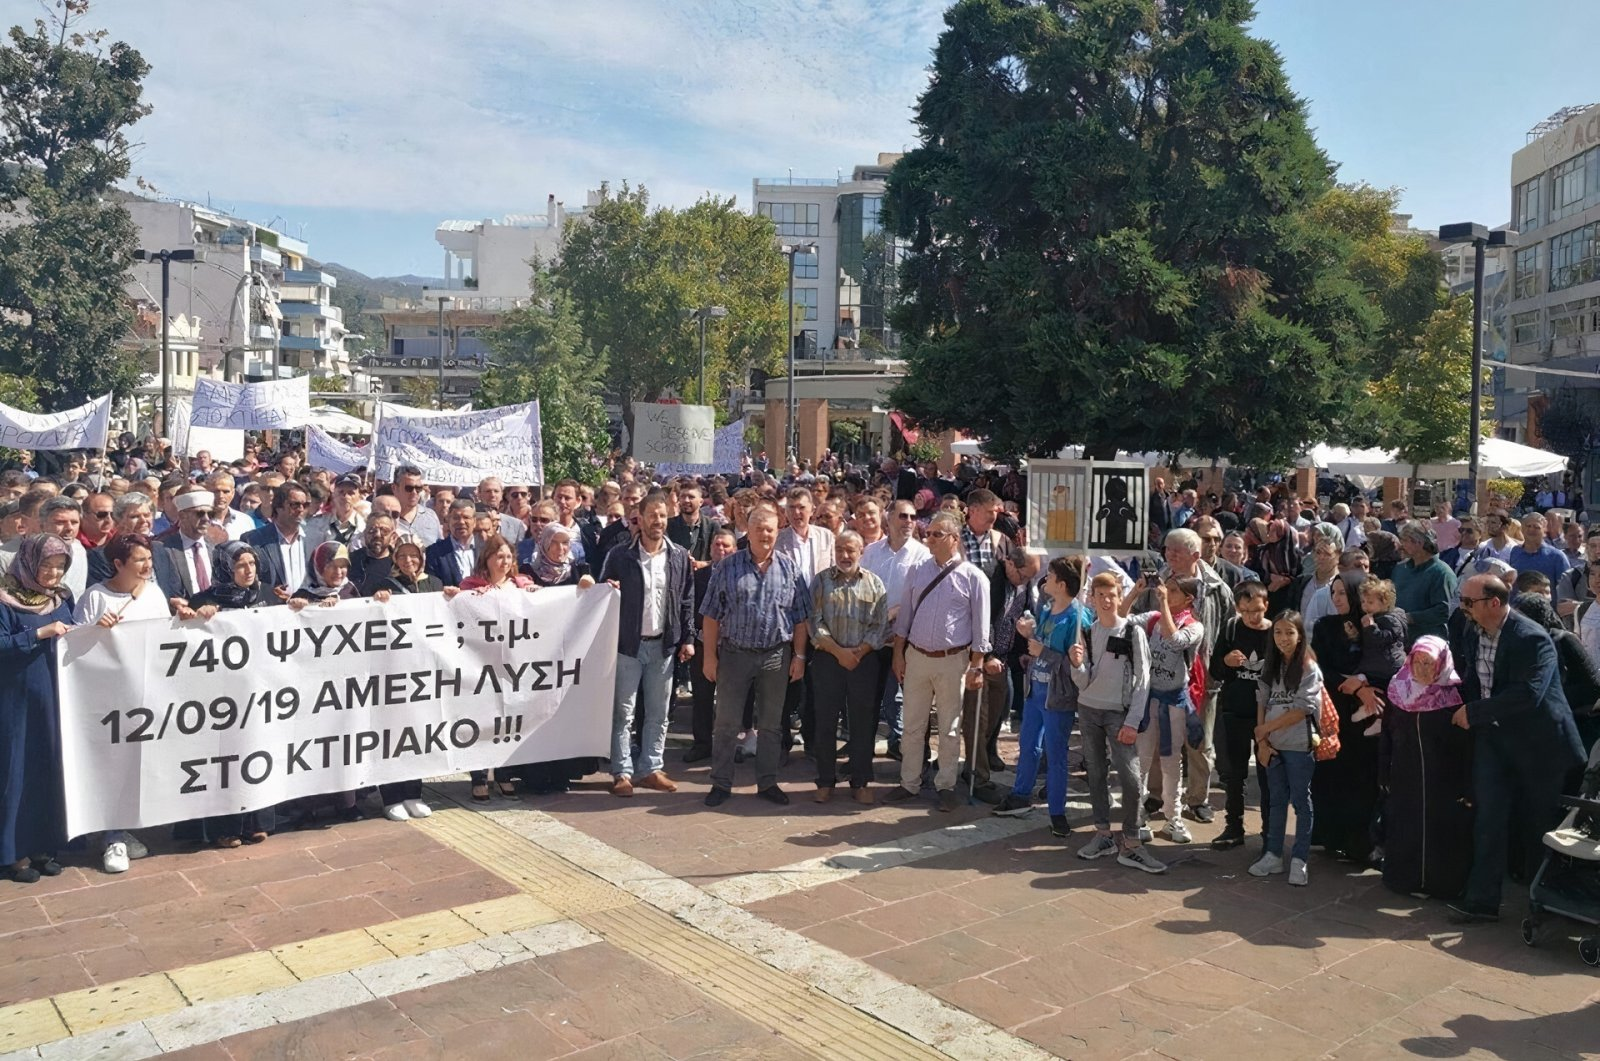 Turks in Western Thrace's Iskeçe (Xanthi) province protest Greek government's assimilation policies in education, Iskeçe (Xanthi), Western Thrace, Greece, Sept. 24, 2019. (Sabah Photo)